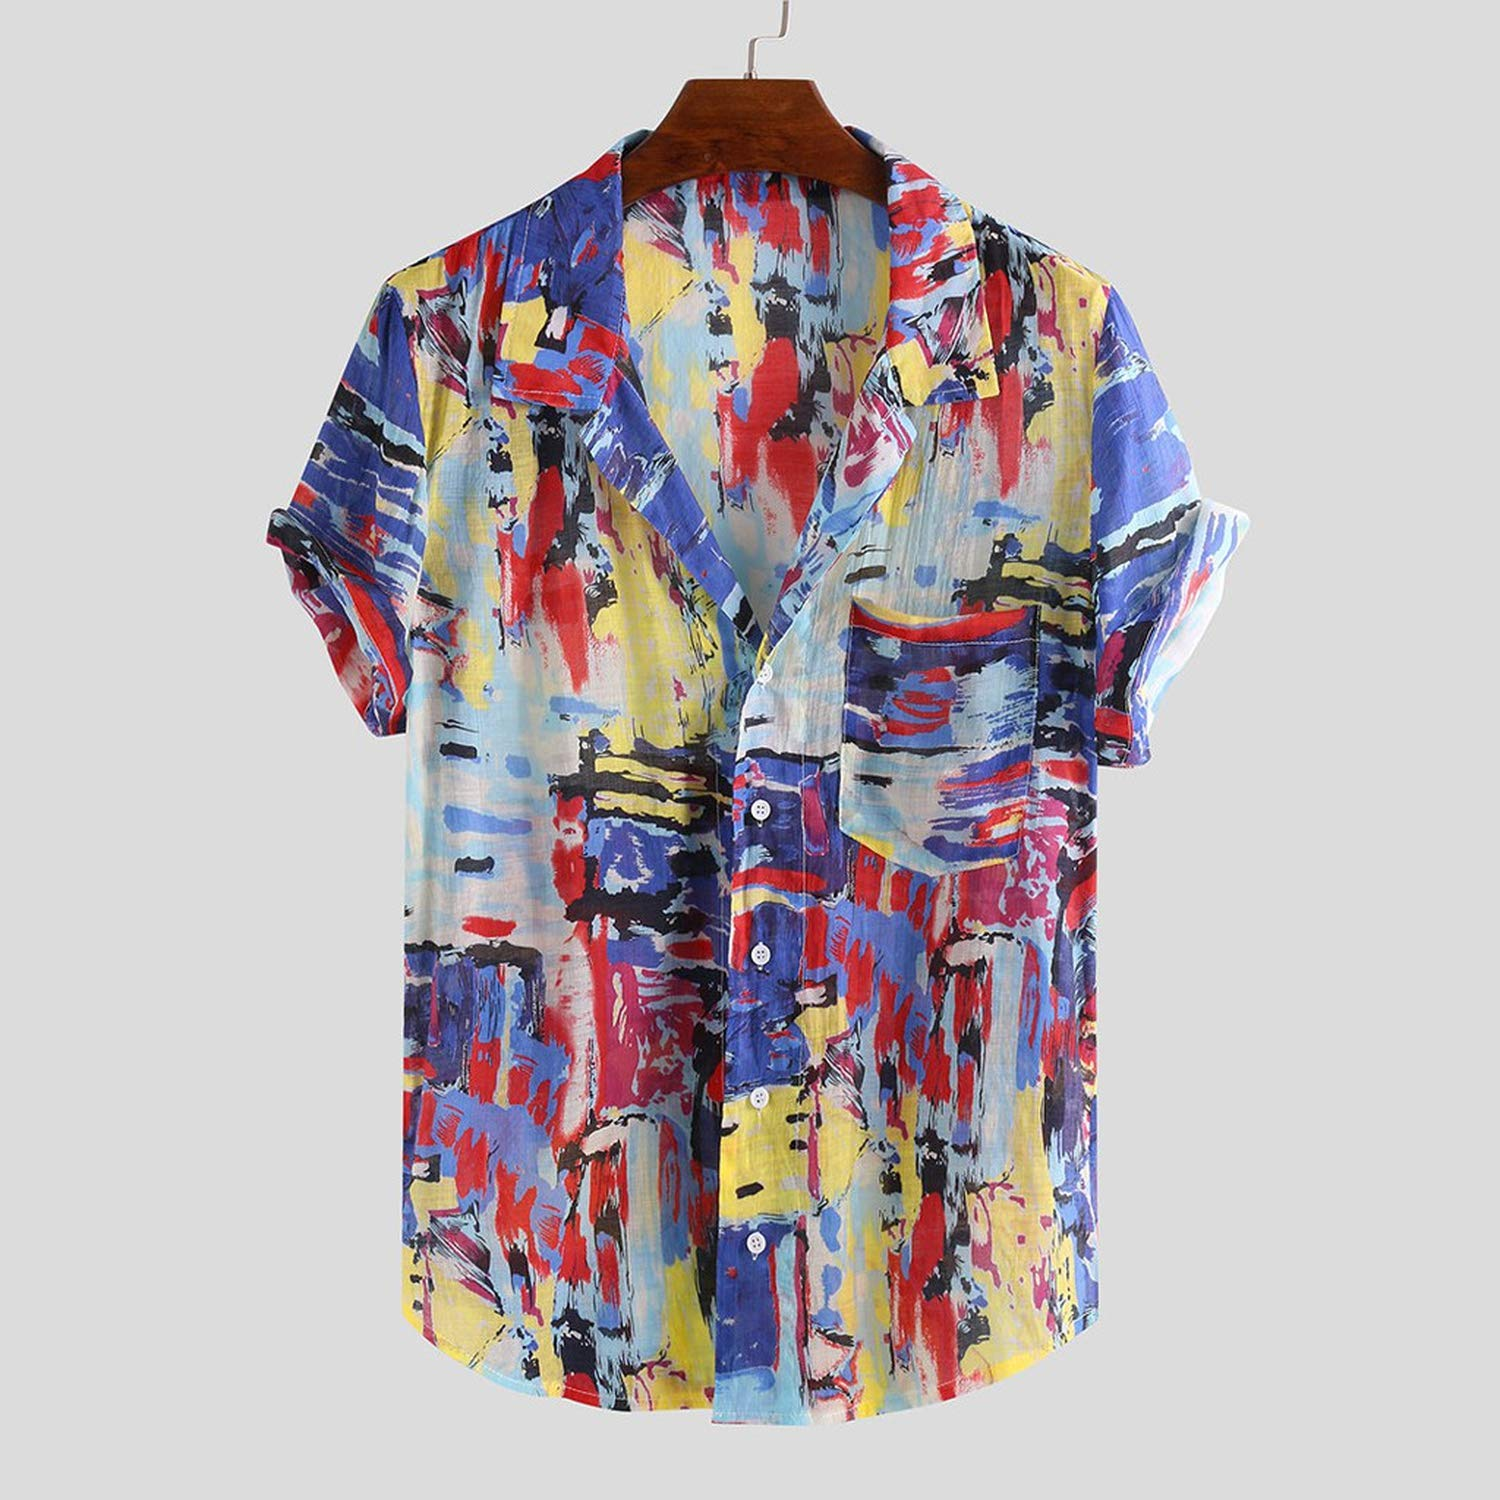 Mens Pure Cotton Colorful Unique Hawaii Style Summer Ethnic Pattern Turn Down Collar Short Sleeve Shirt Mens Clothing,Beige,XL,China